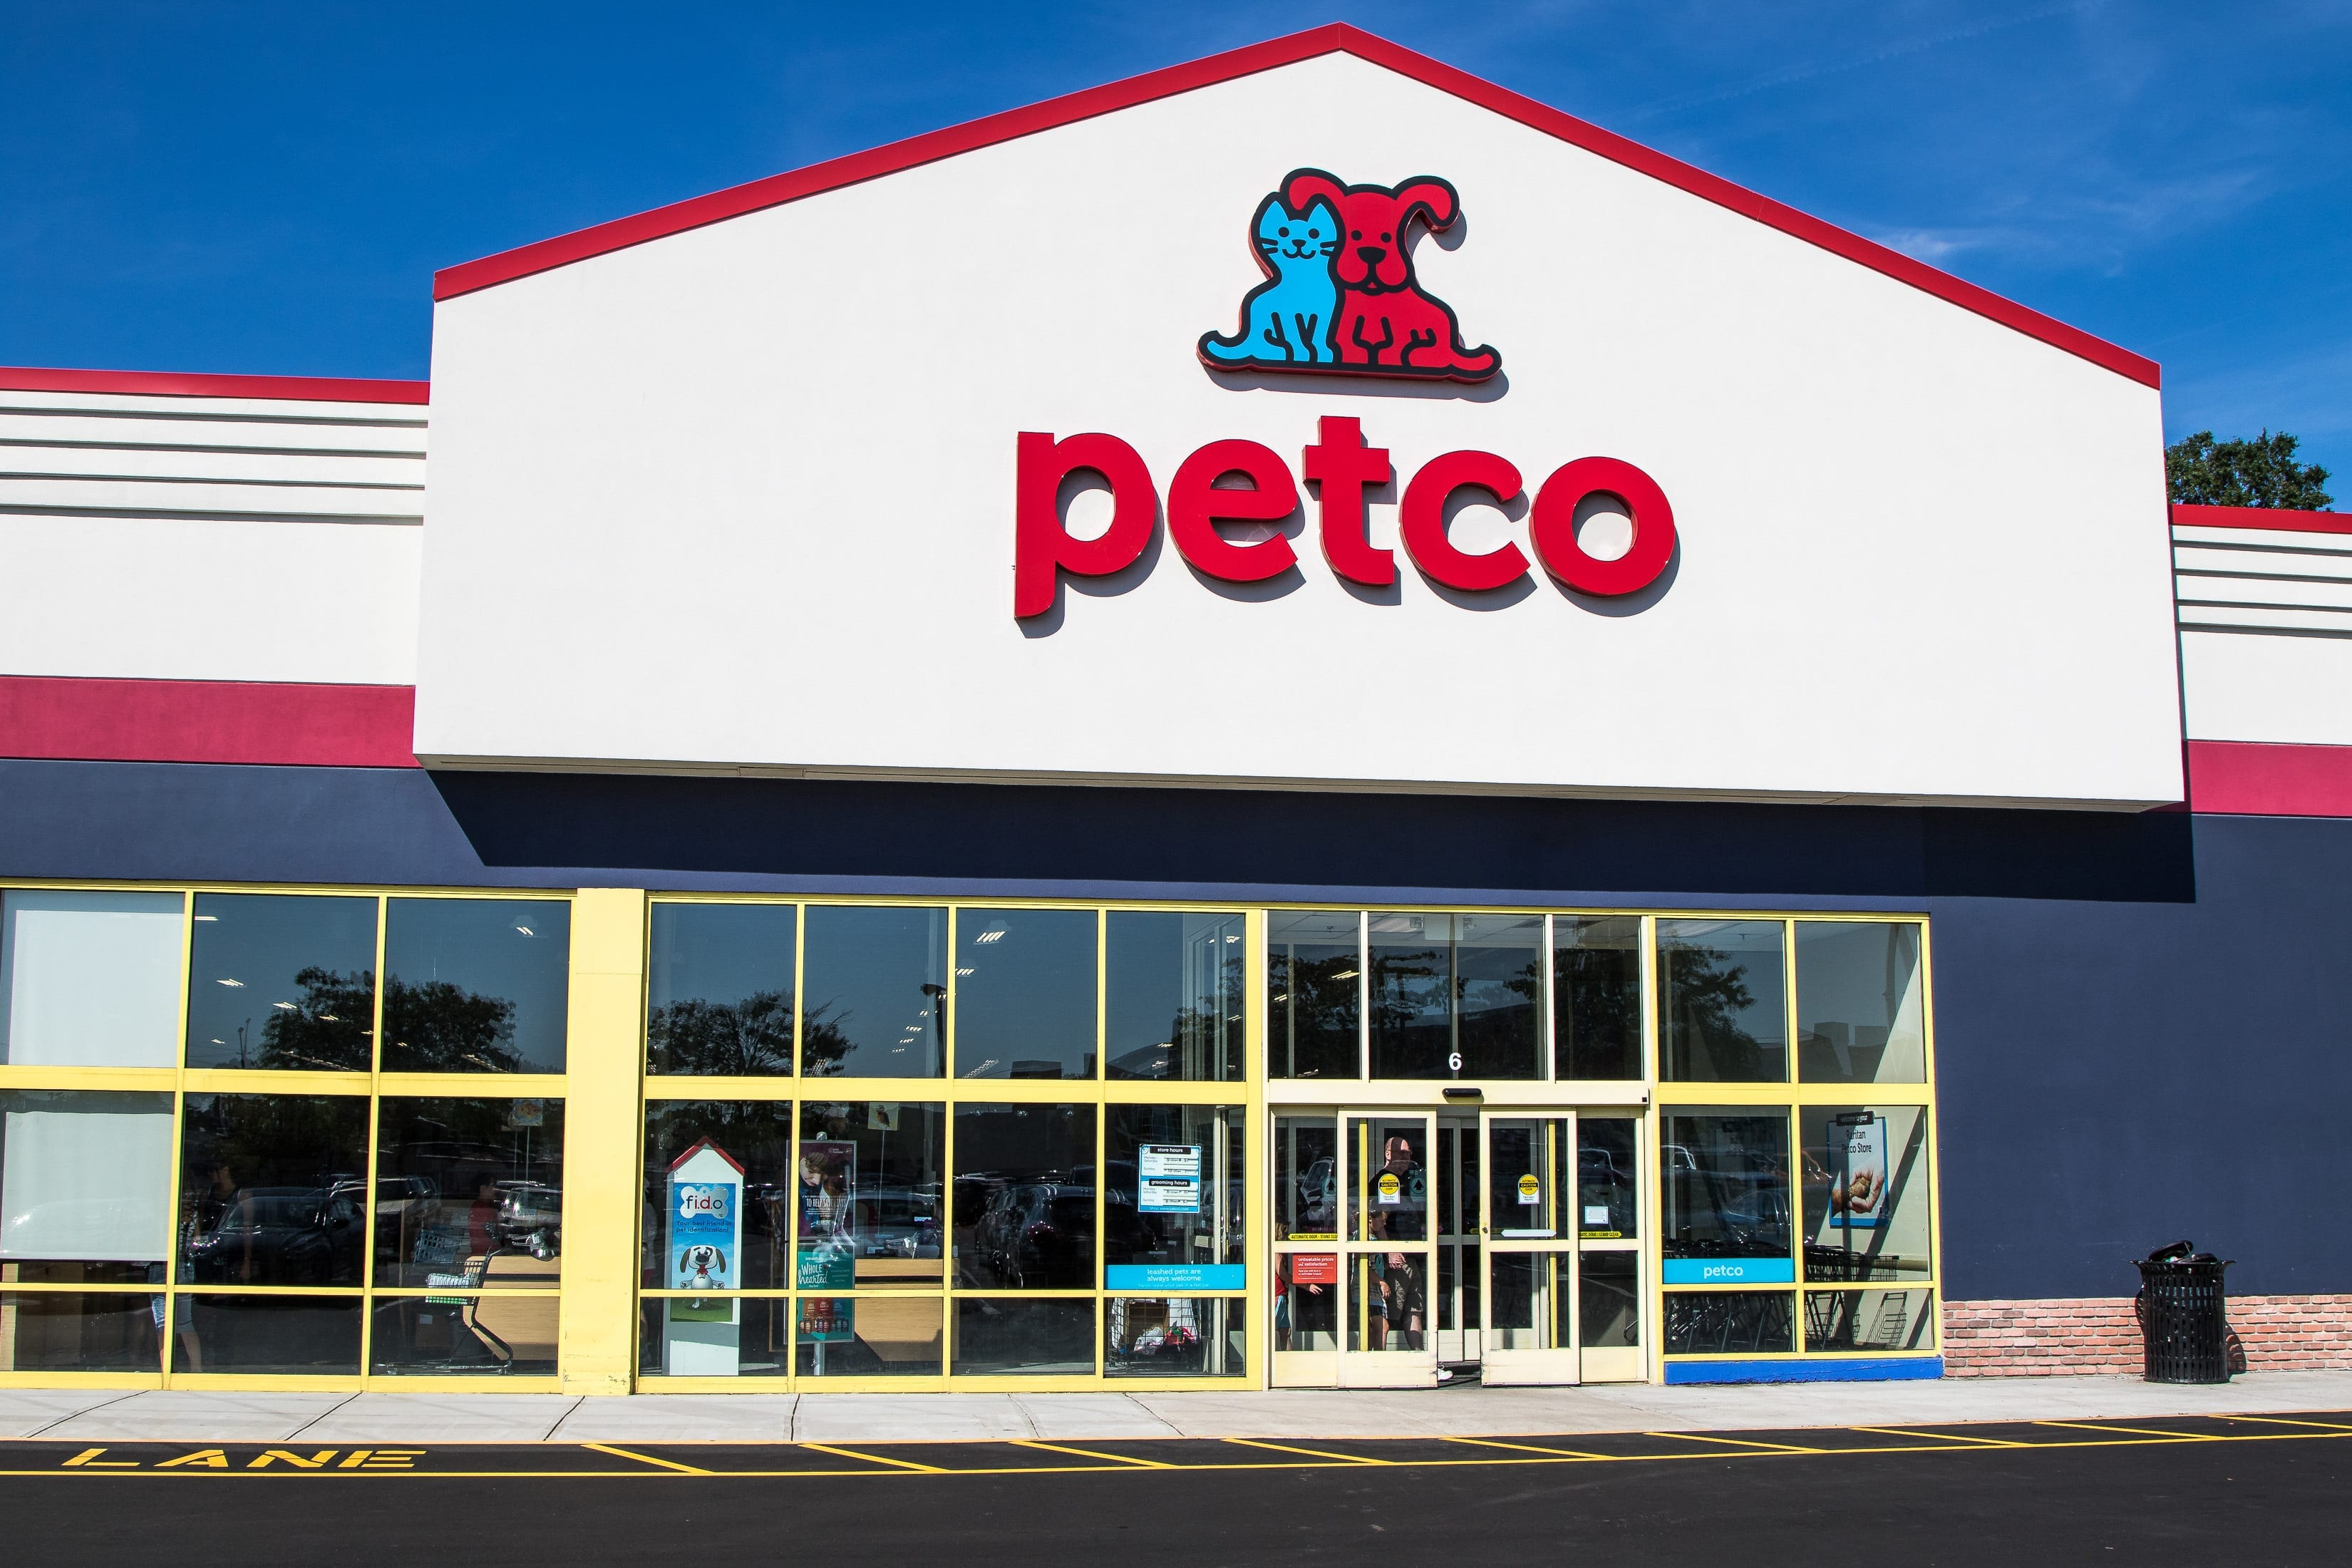 Petsmart Christmas Hours 2020 Petco Eyes IPO Or Sale At $6B Valuation | PYMNTS.com